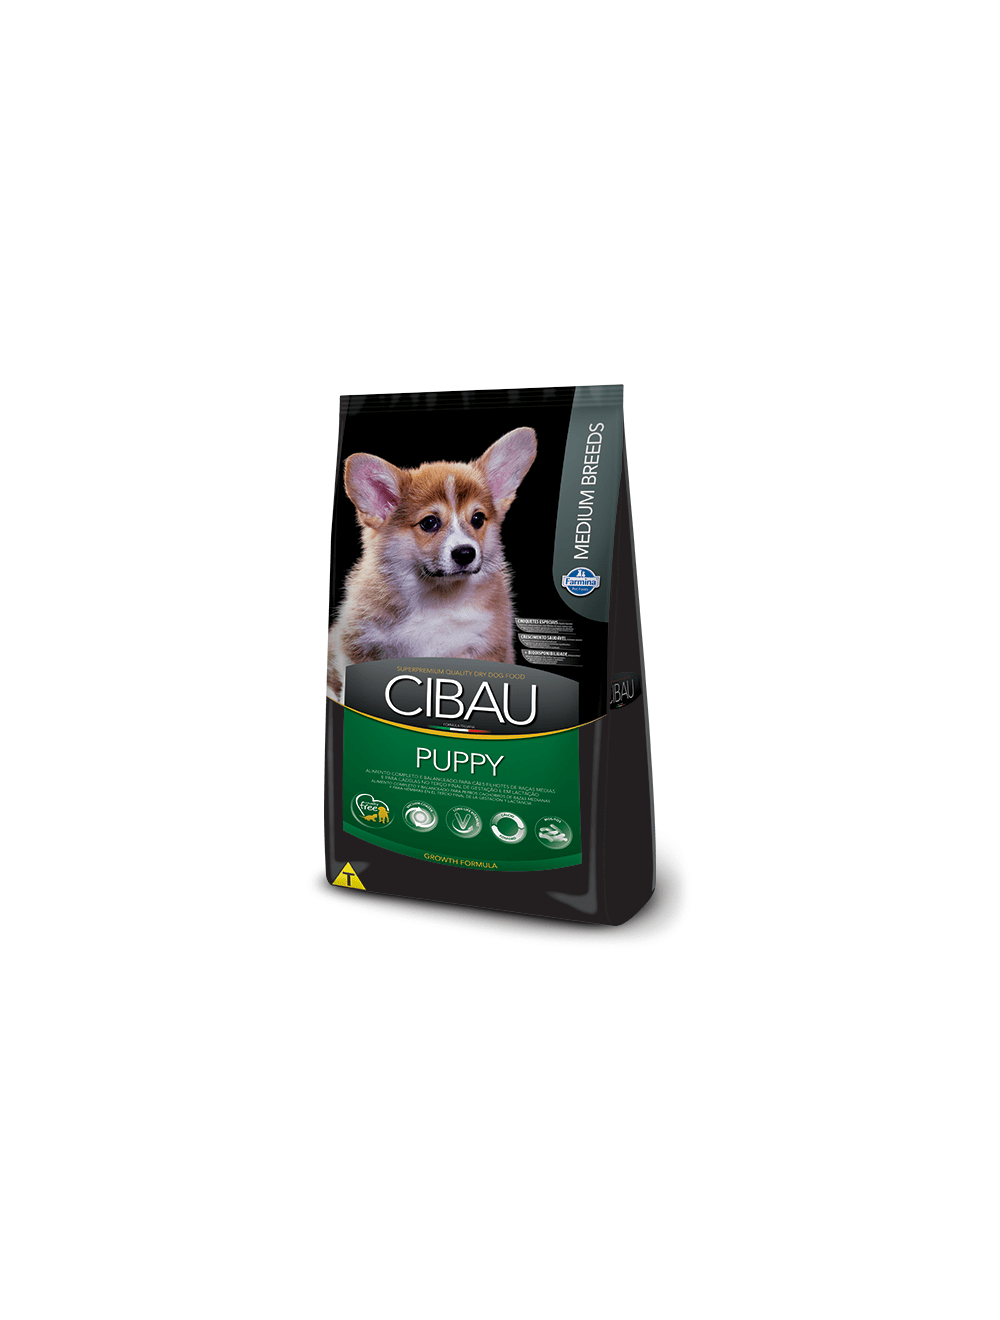 Comida Cibau Puppy Medium Breed - Cibau Puppy Medium Breed